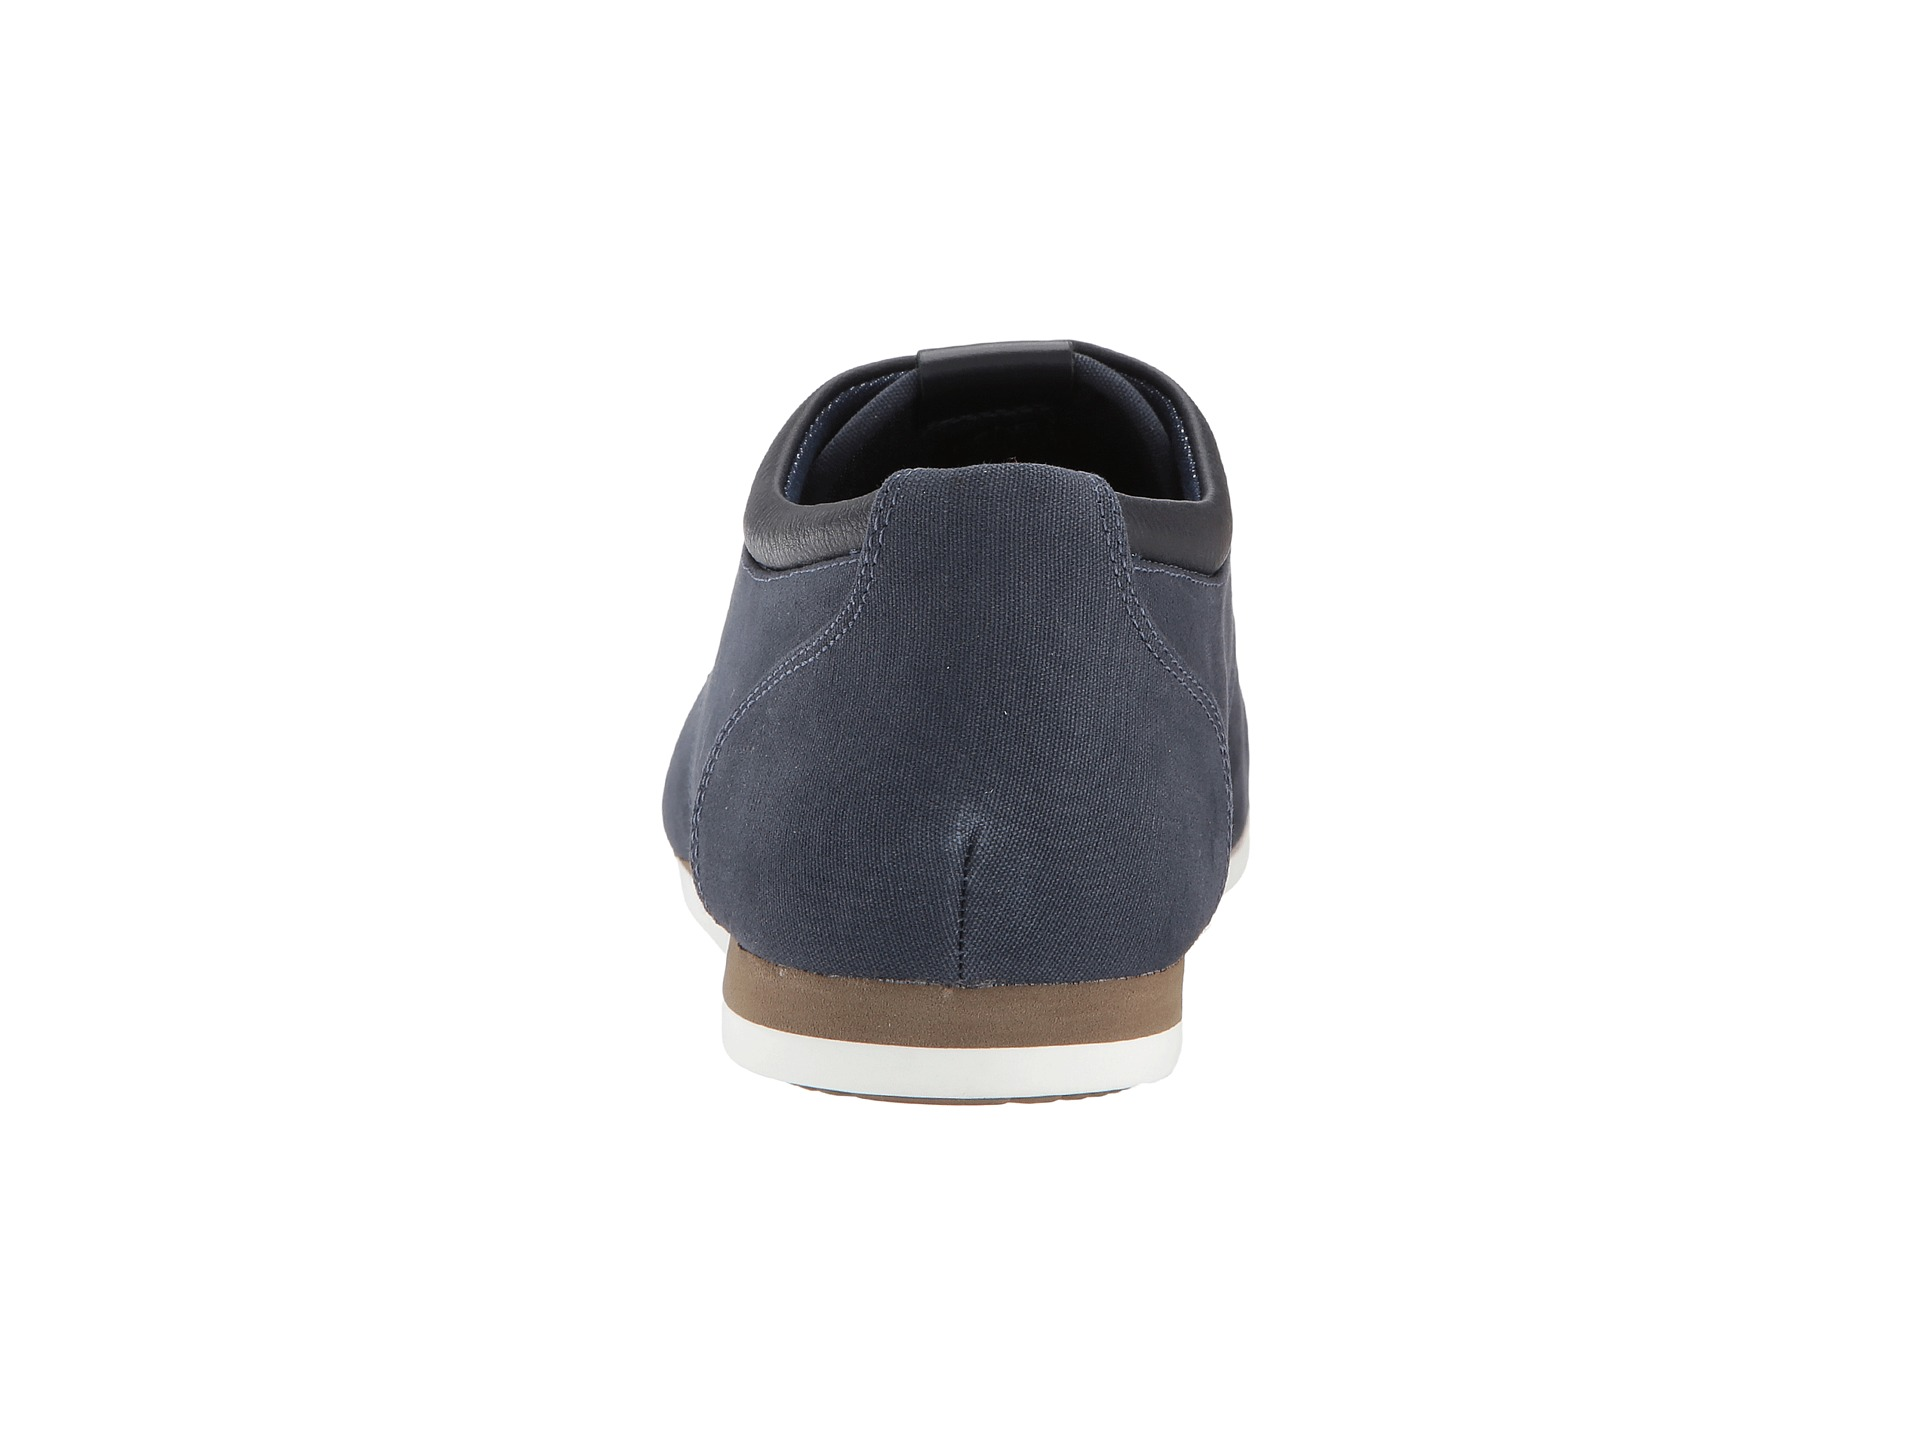 Aldo Aauwen Lace Up Shoes In Navy